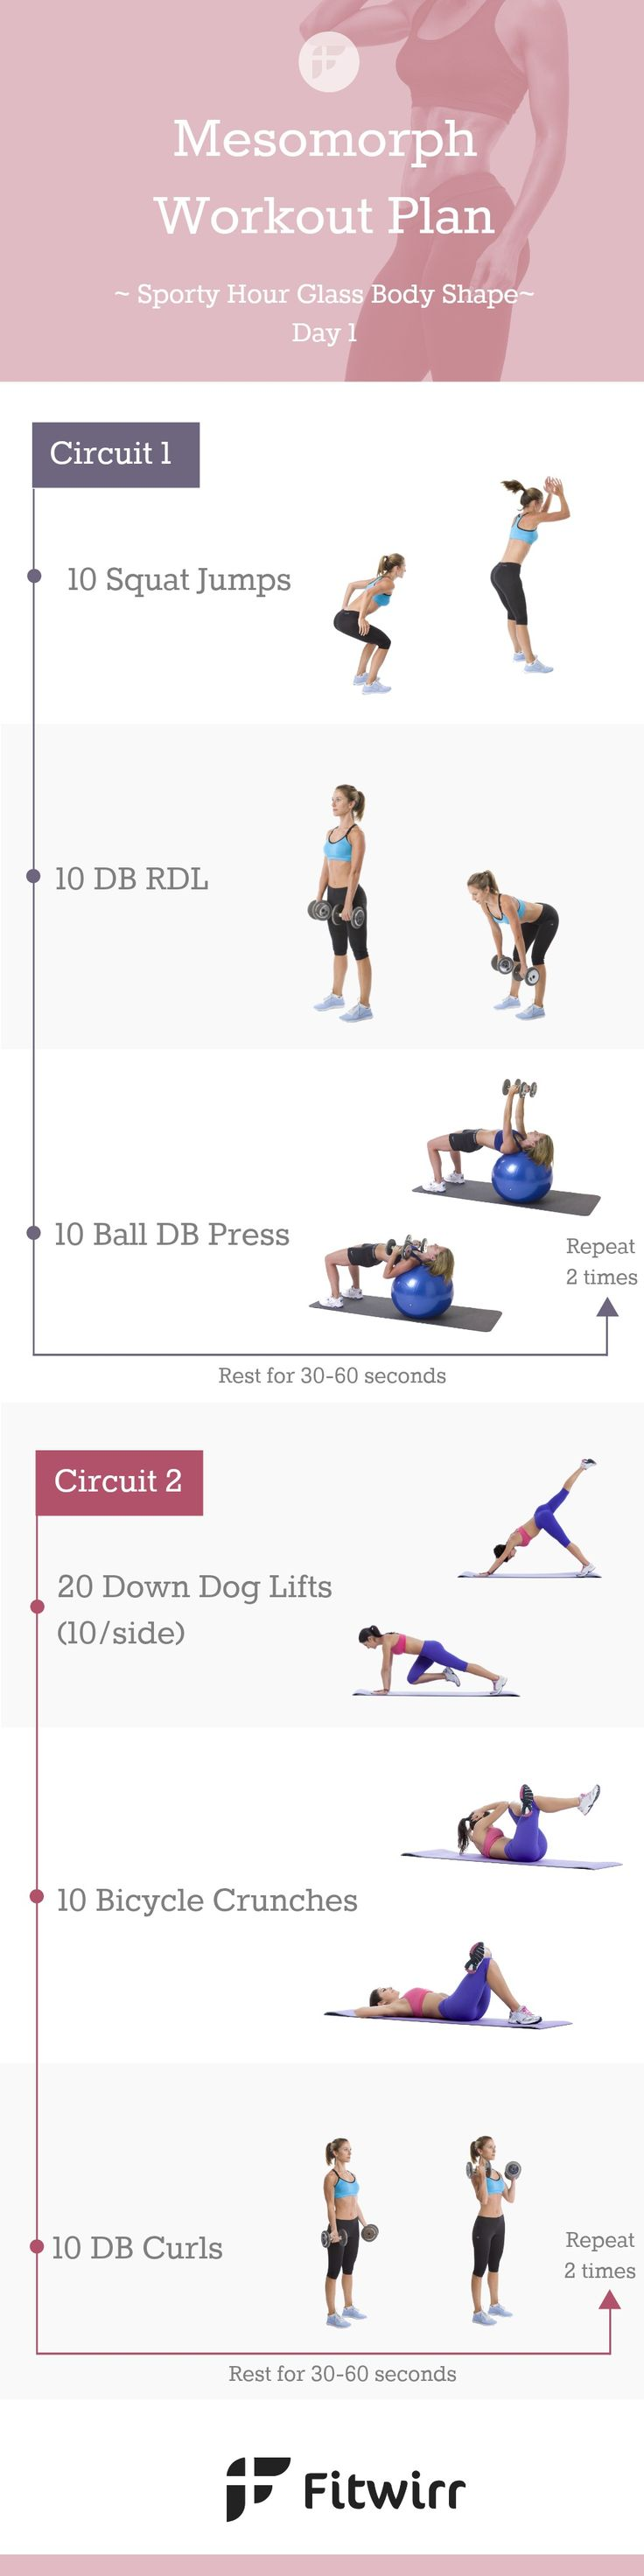 Mesomorph Workout Plan - Day 1. Are you a mesomorph woman? Then, you are in luck. Mesomorph body type can make a drastic body transformation fairly easily thanks to the lean, athletic genes. To enhance your womanly curves and tone up the bottom for a slender, lean, defined body, follow this workout for 4-8 weeks along with the day 2 and day 3 plans (coming soon!).